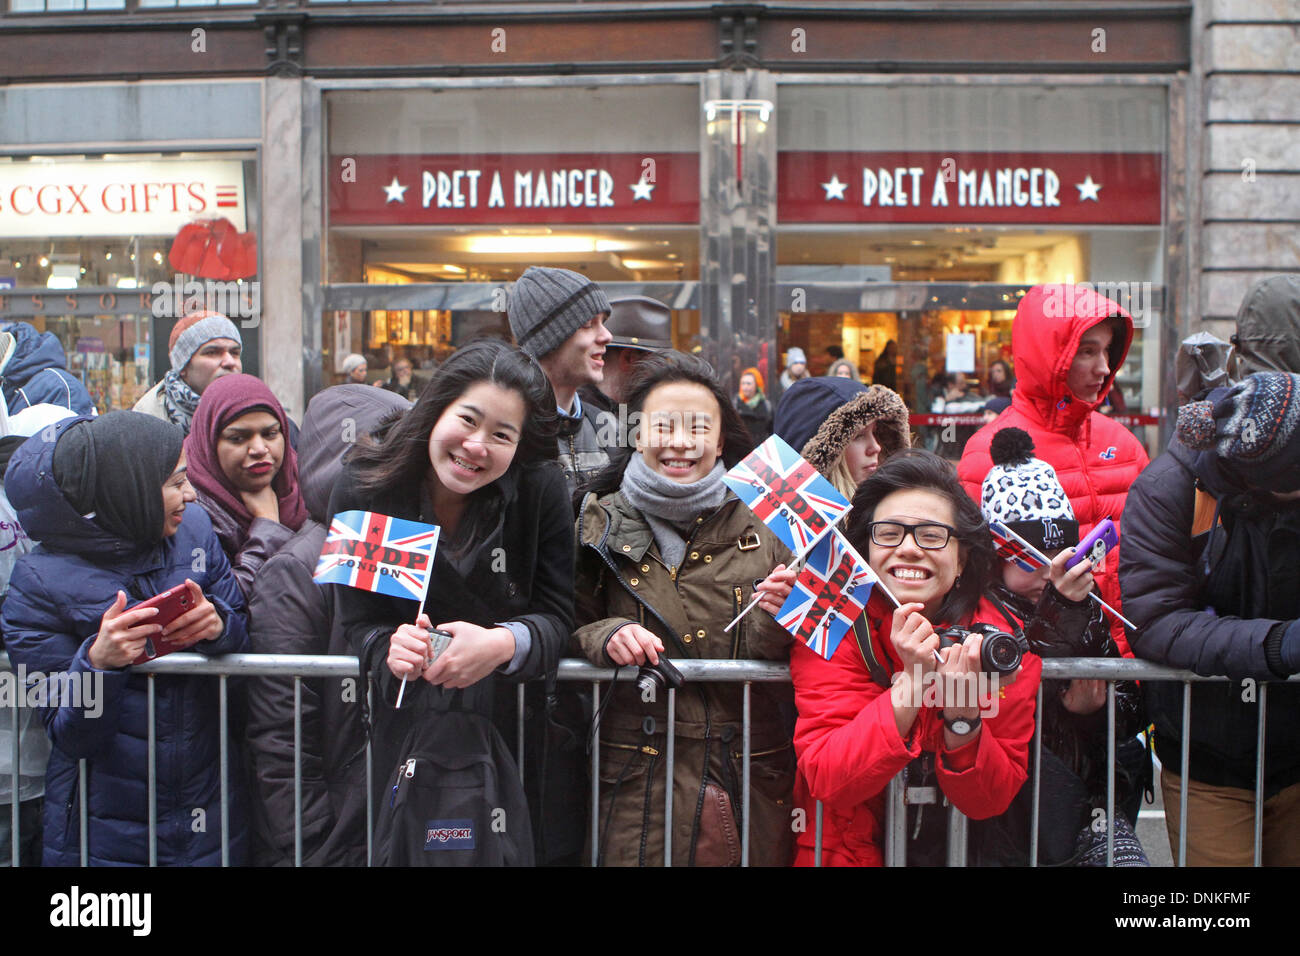 London,UK,1st January 2014,Crowds smile despite the rain waiting for the London's New Year's Day Parade 2014 Credit: Keith Larby/Alamy Live News - Stock Image